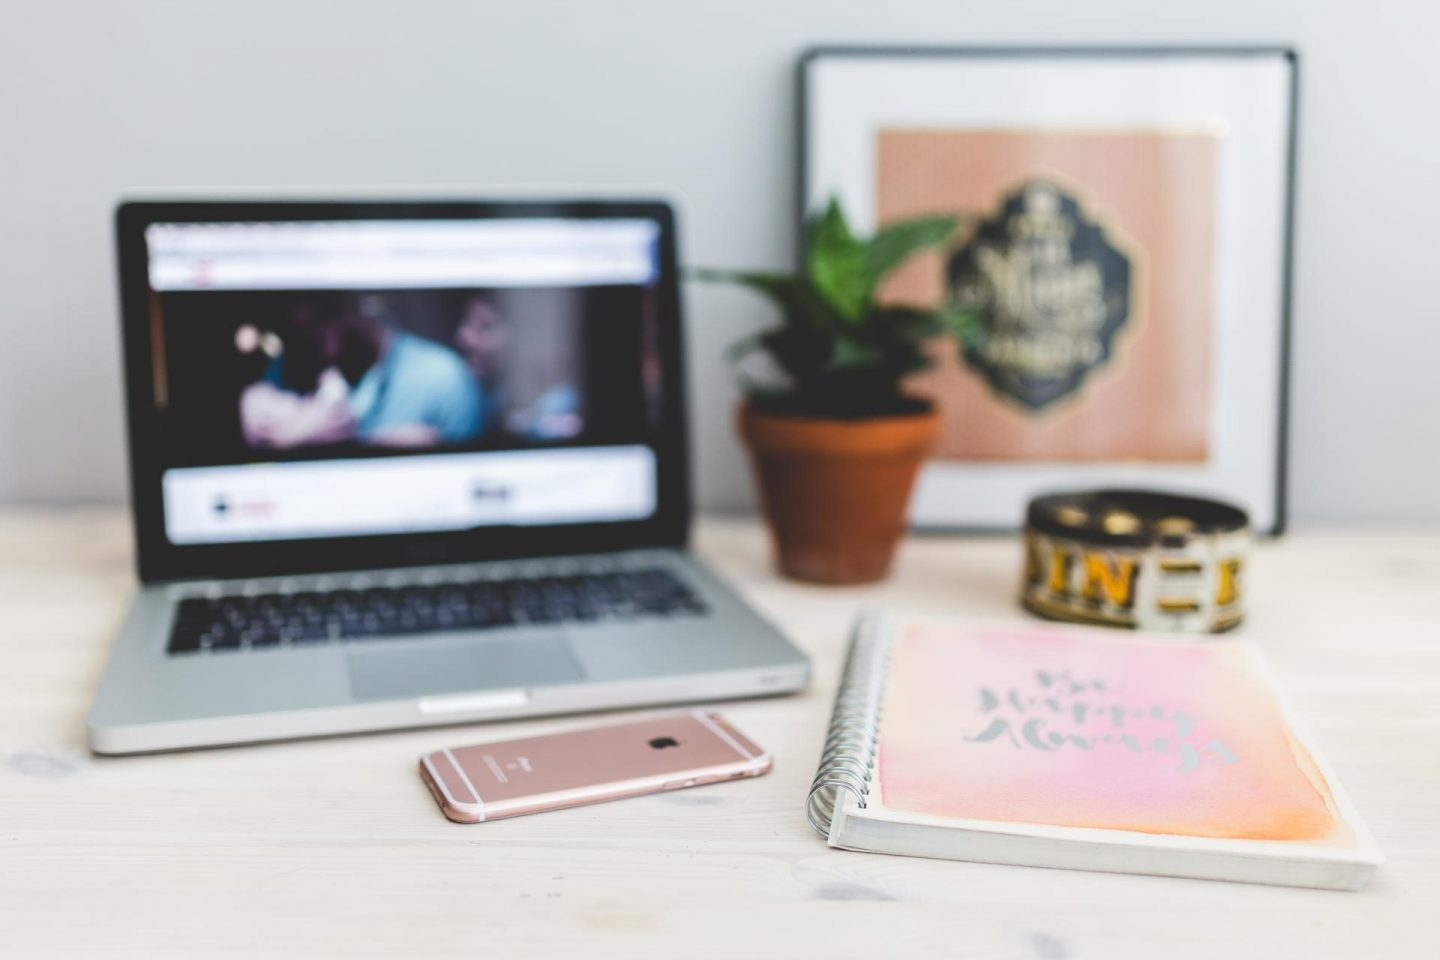 Bloggers vs PRs: Working in blogger outreach